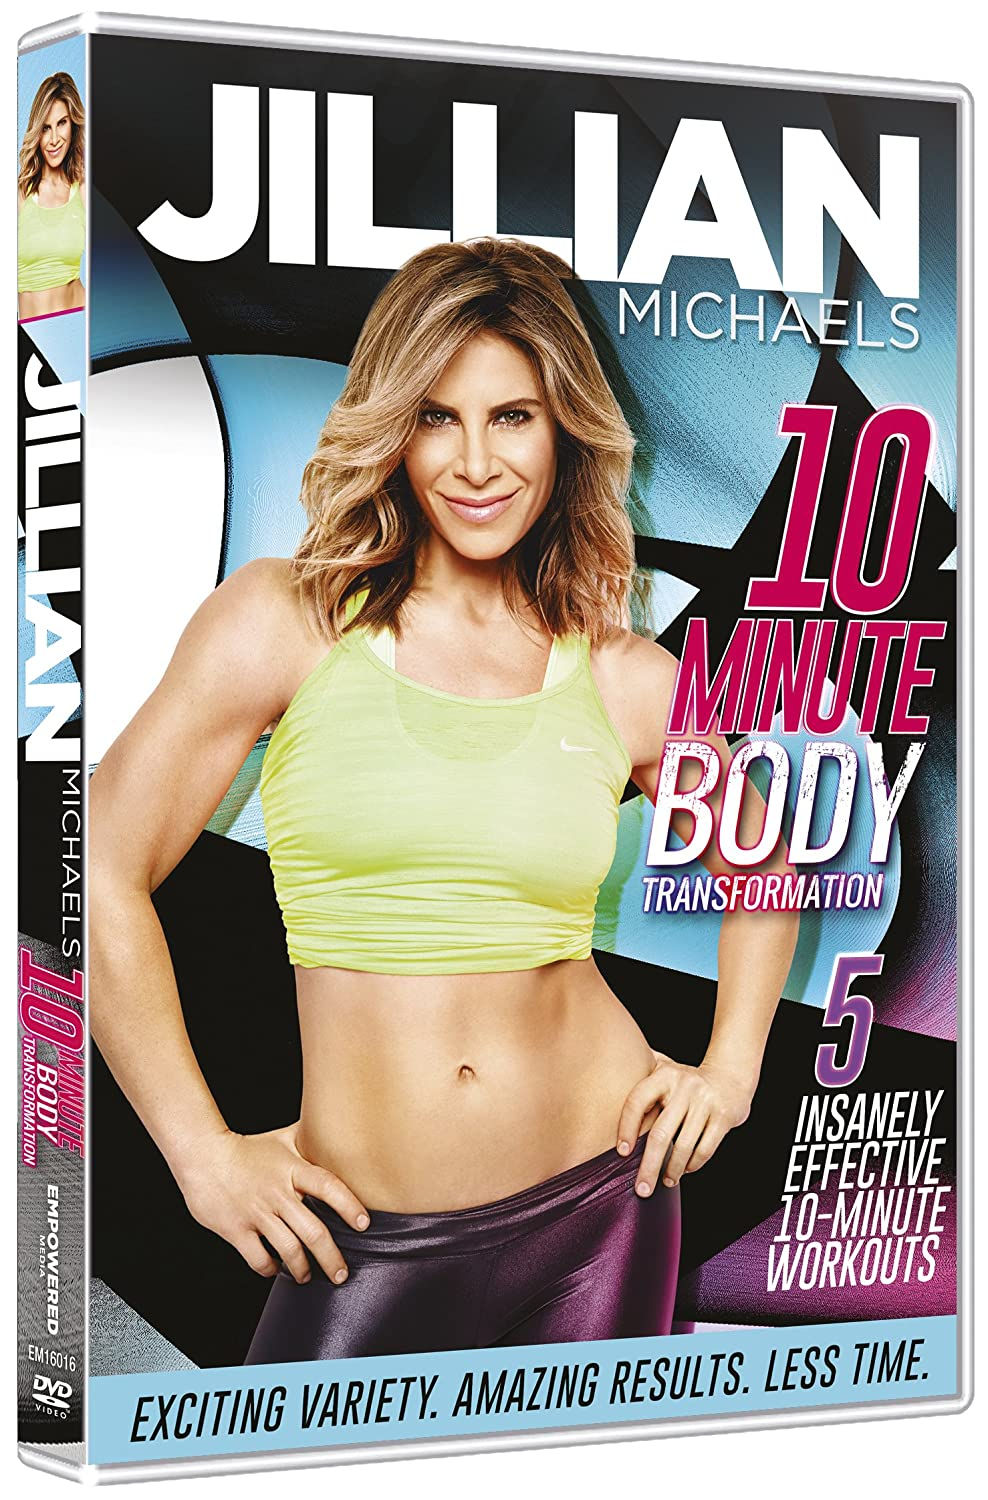 https://www.amazon.co.uk/JILLIAN-MICHAELS-Minute-Body-Transformation/dp/B01LZAI39X/ref=sr_1_3?ie=UTF8&qid=1484814425&sr=8-3&keywords=10+minute+body